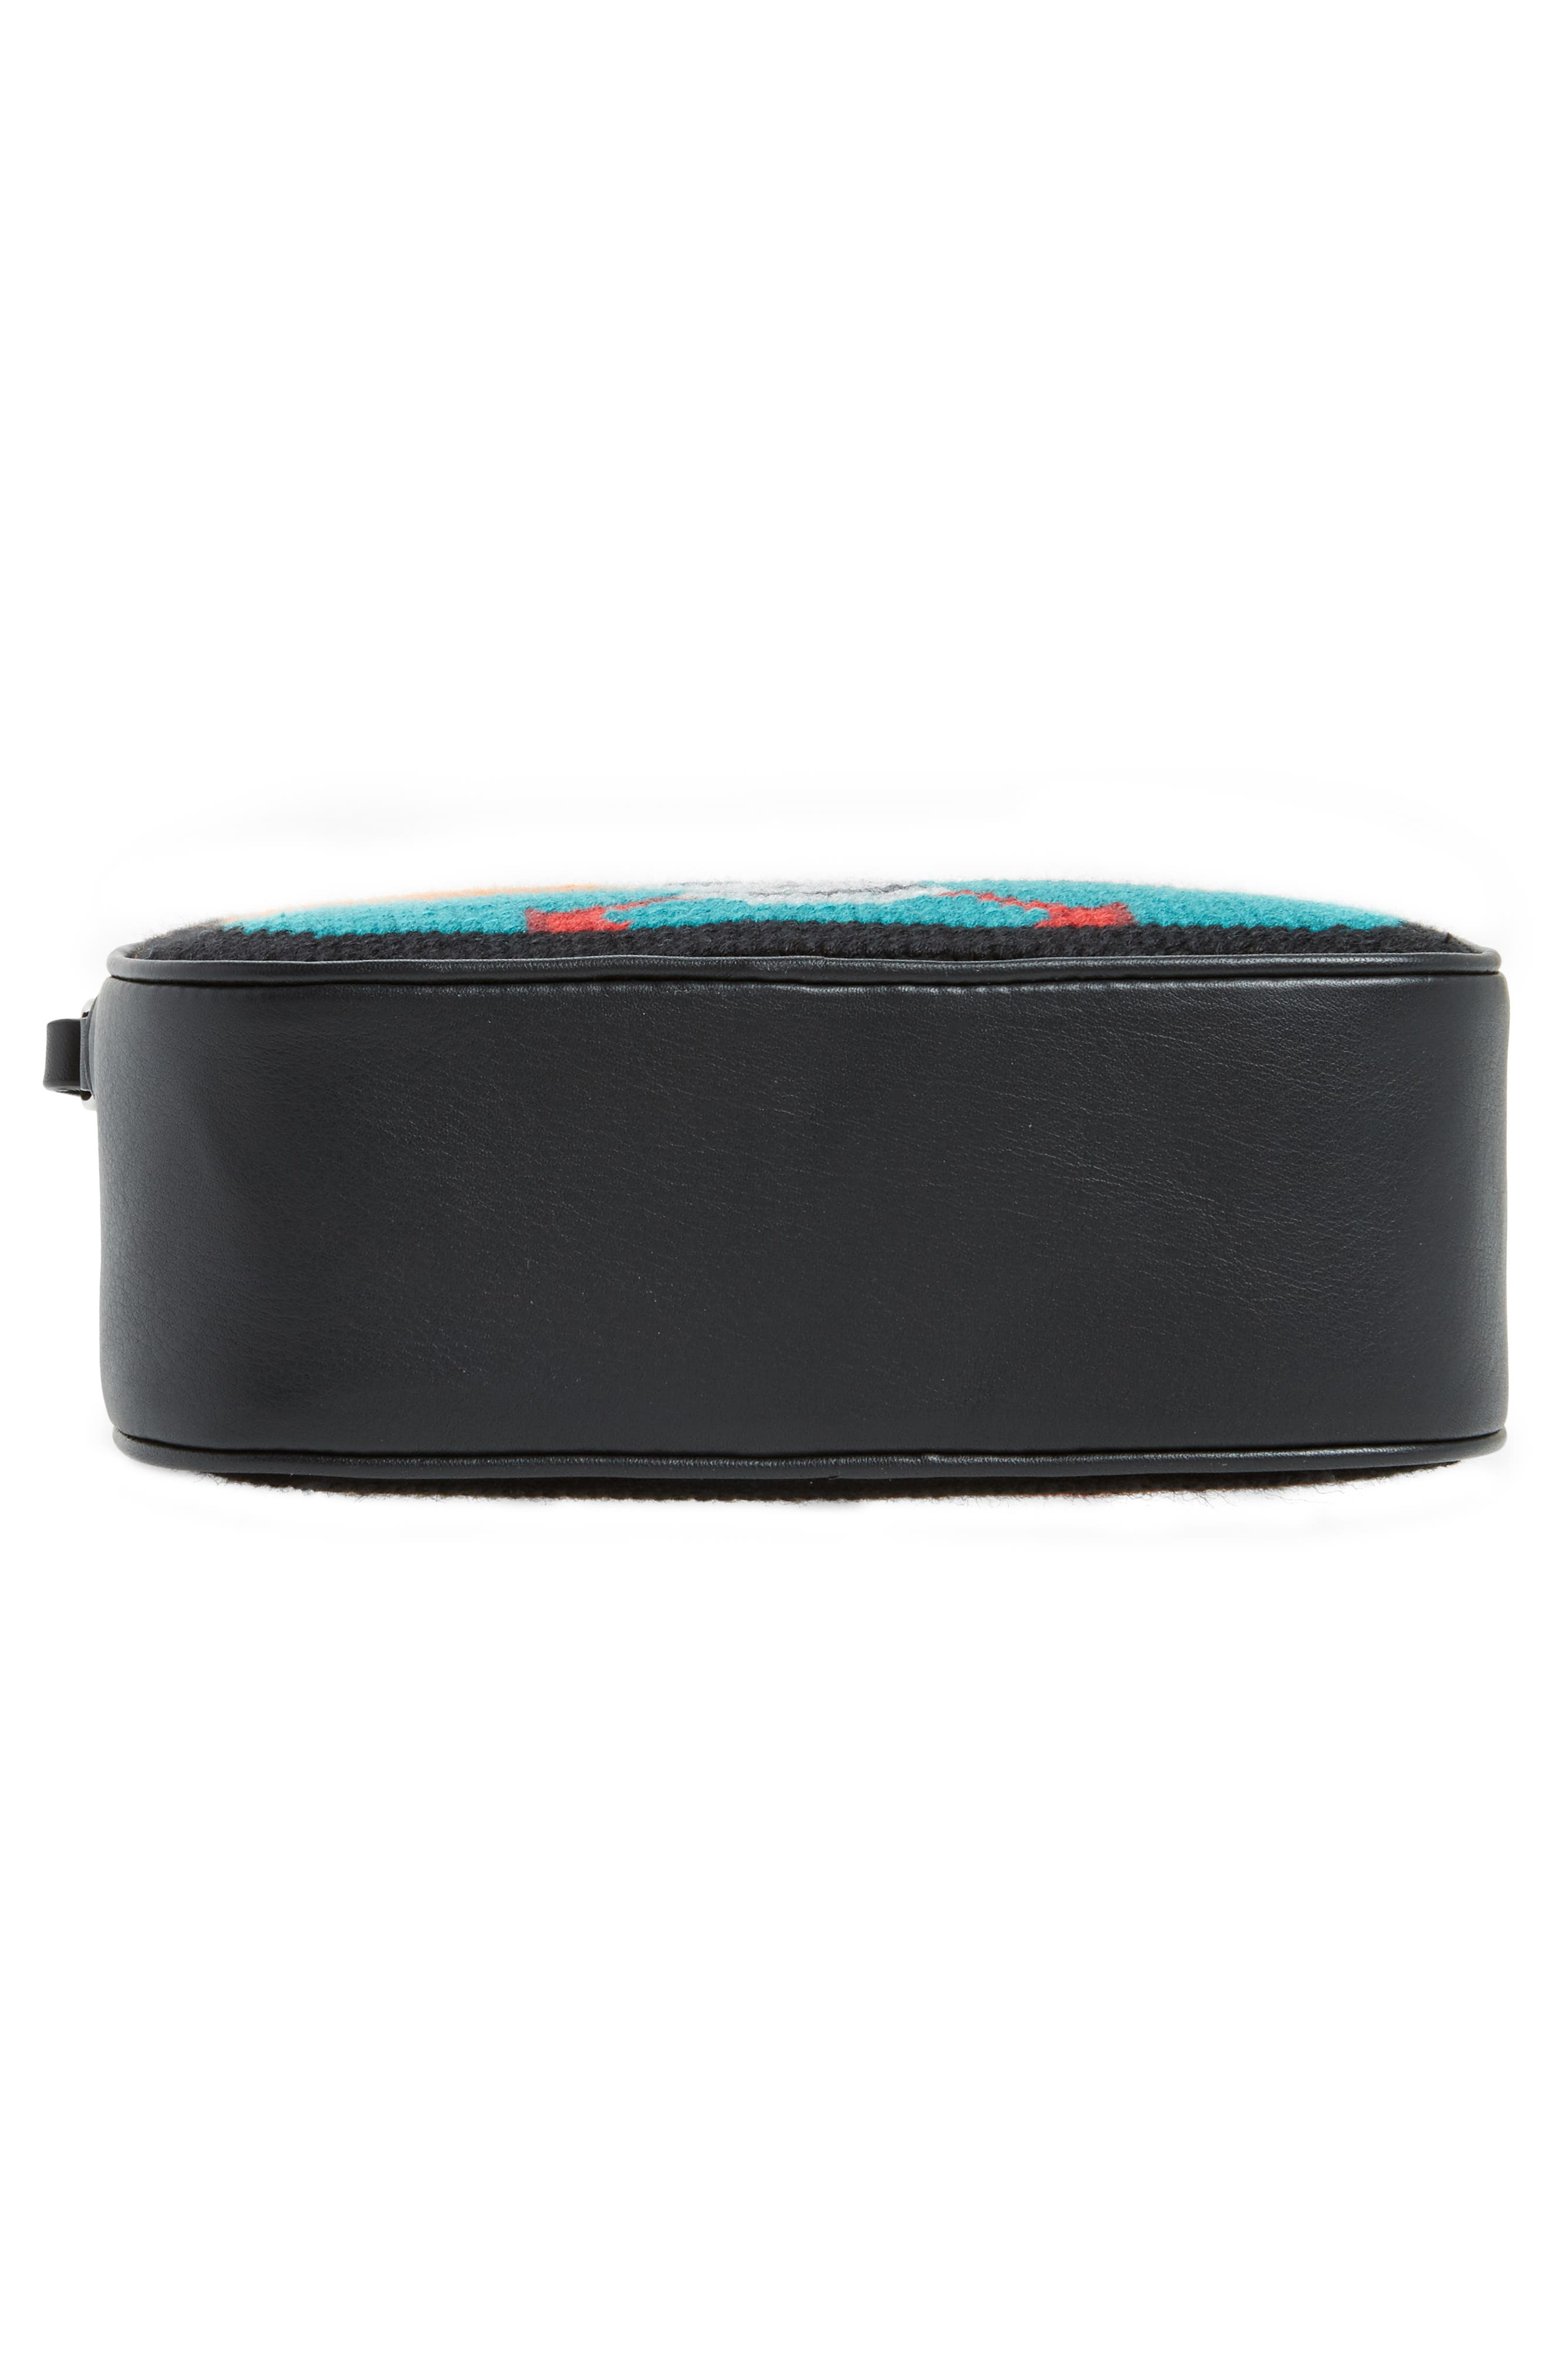 Small Embroidered Leather Camera Bag,                             Alternate thumbnail 6, color,                             Black Multicolor